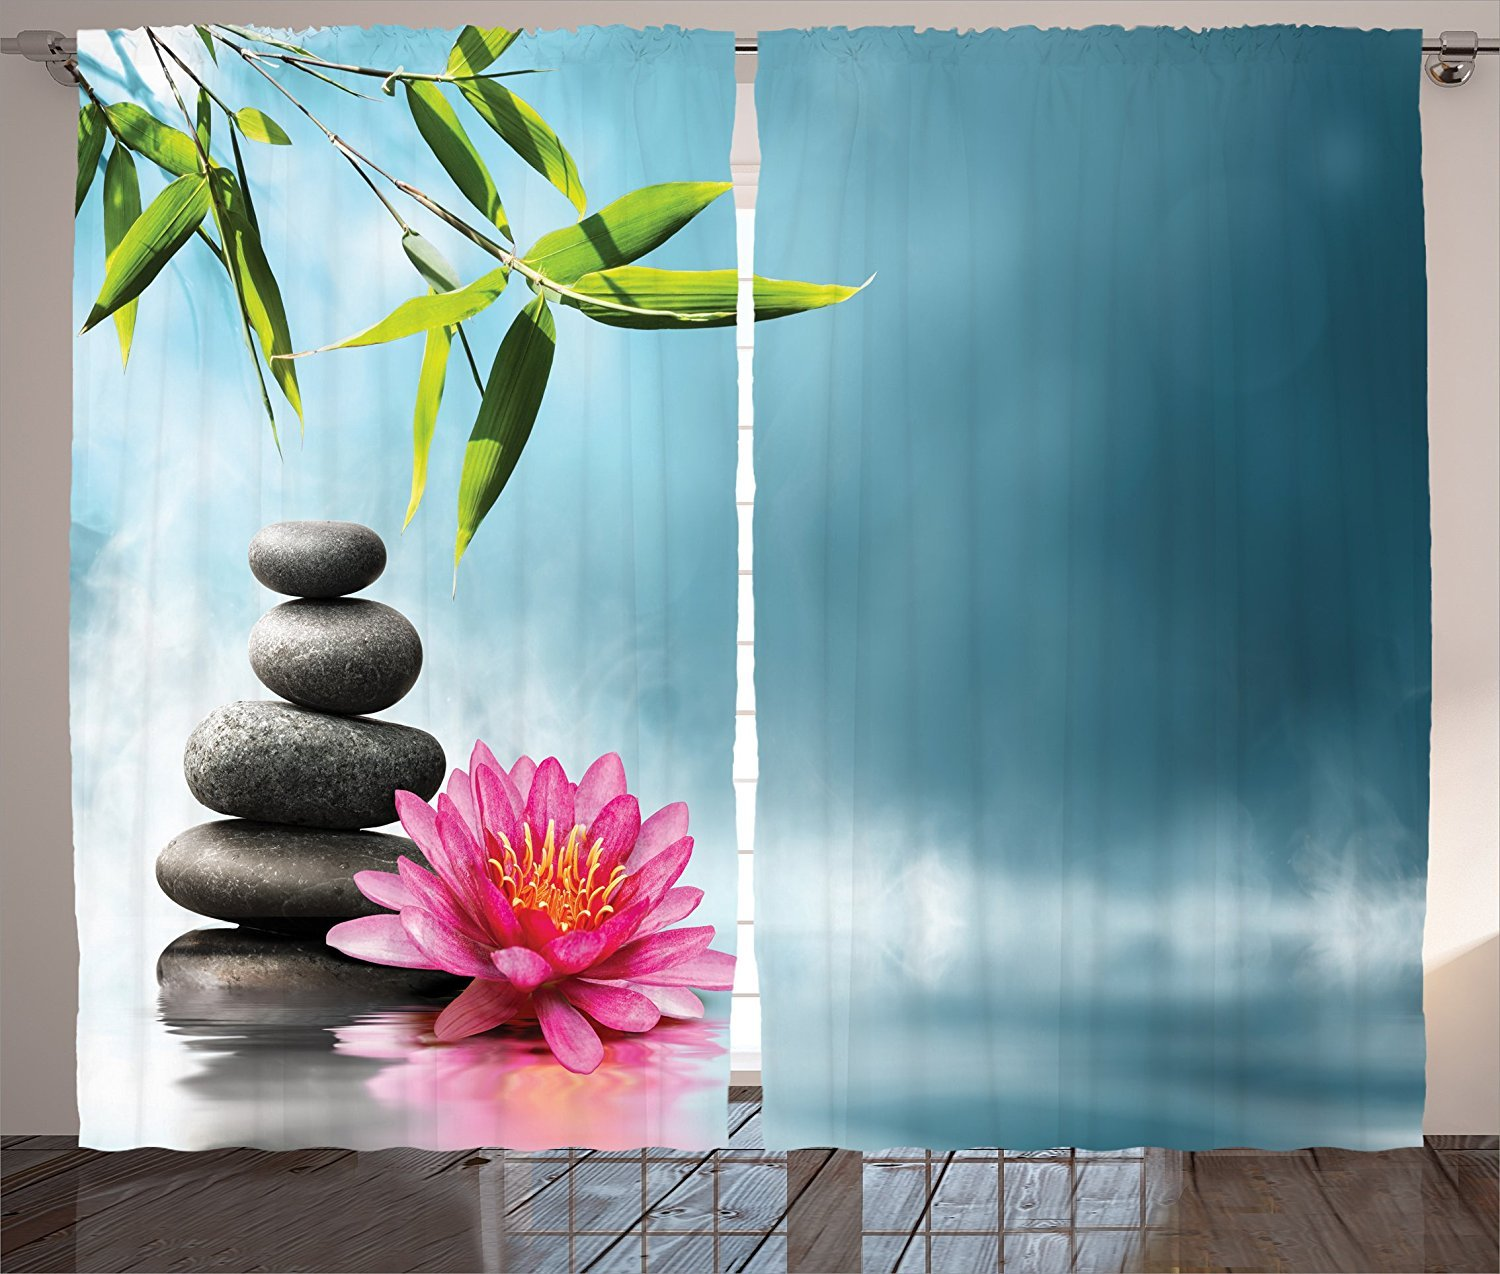 Spa Decor Curtains Spa Theme Picture with Lily Lotus Flower and Rocks Yoga Style Purifying Your Soul Theme Living Room Bedroom Decor 2 Panel Set Blue Pink Green